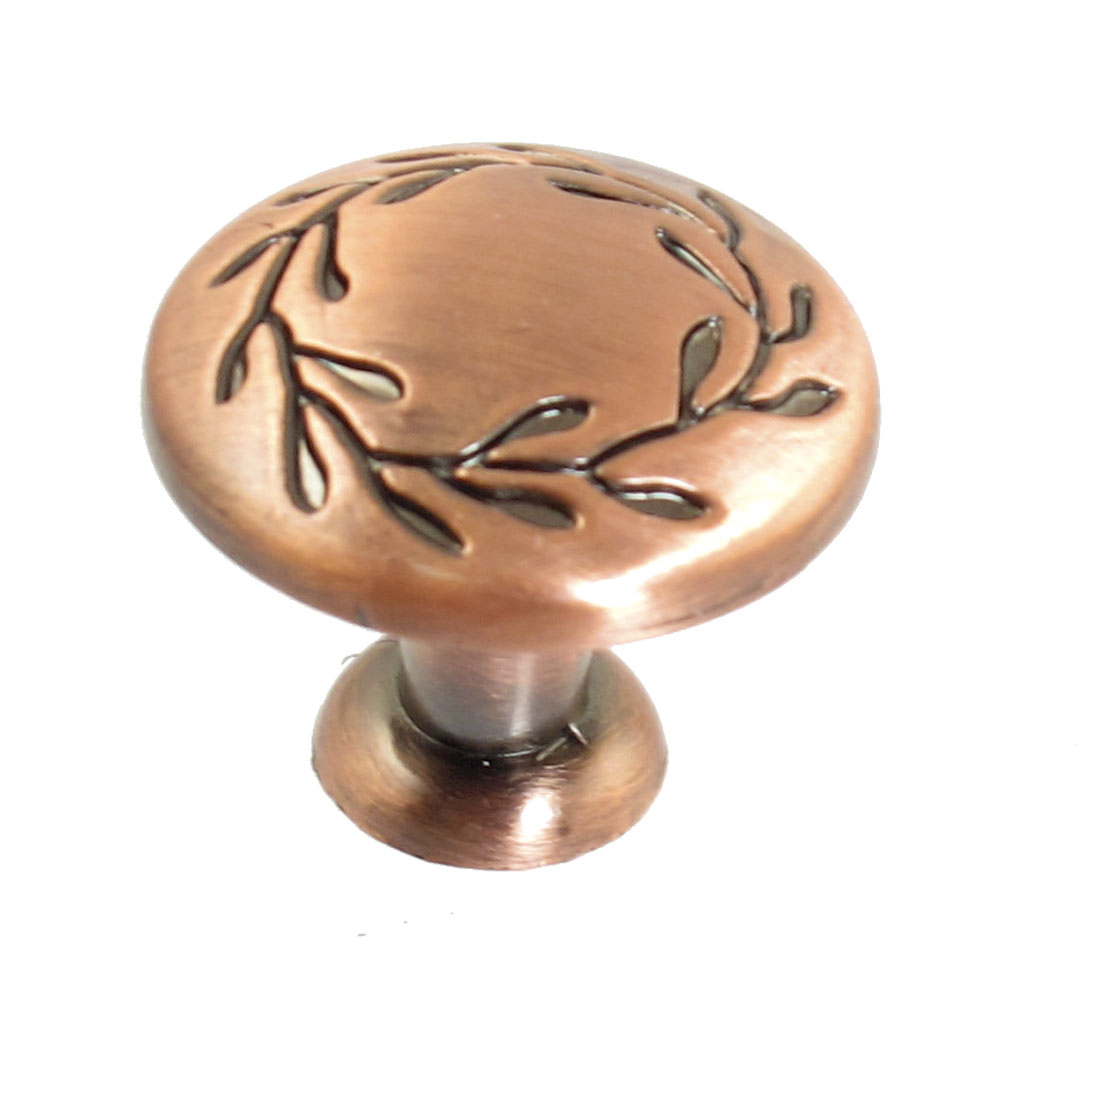 Drawer Door Antique Style Carved Leaf Round Pull Handle Knob Copper Tone